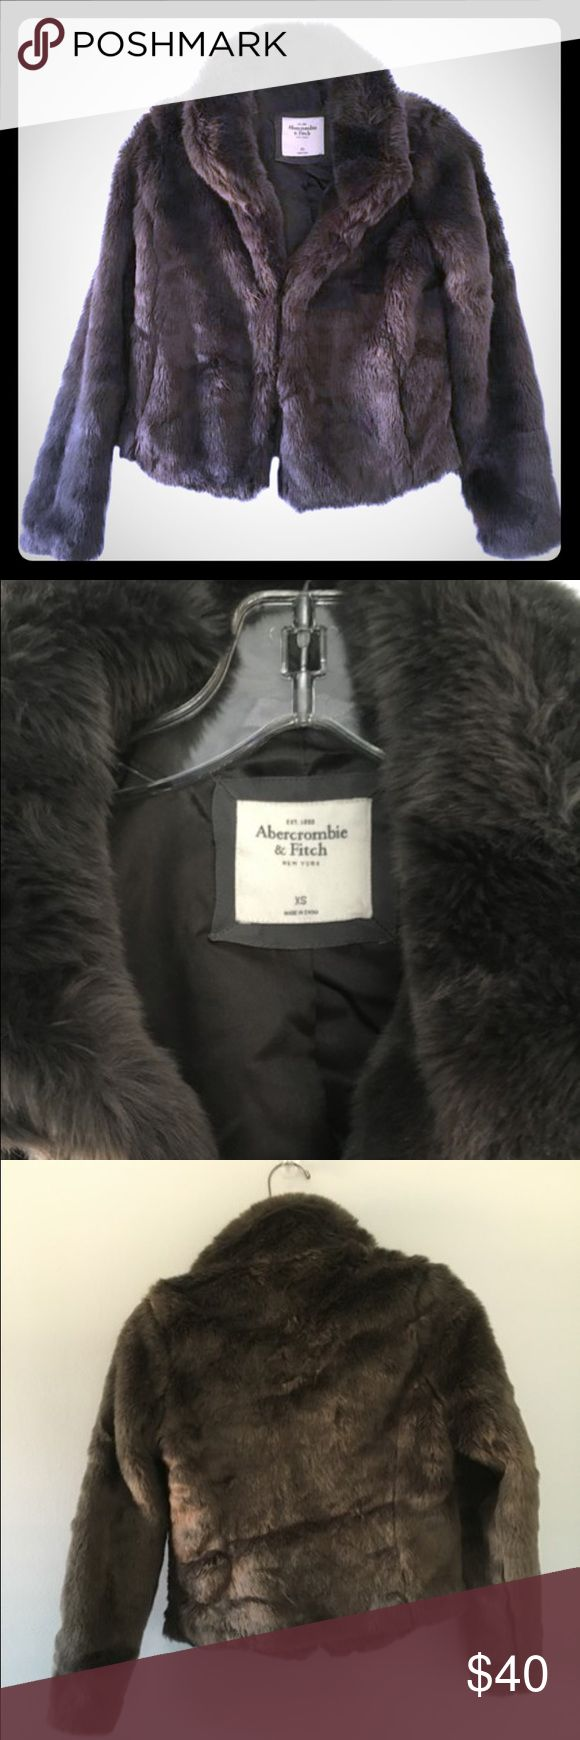 Abercrombie and Fitch jacket Faux fur, steel gray. Comfy and chic! Abercrombie & Fitch Jackets & Coats